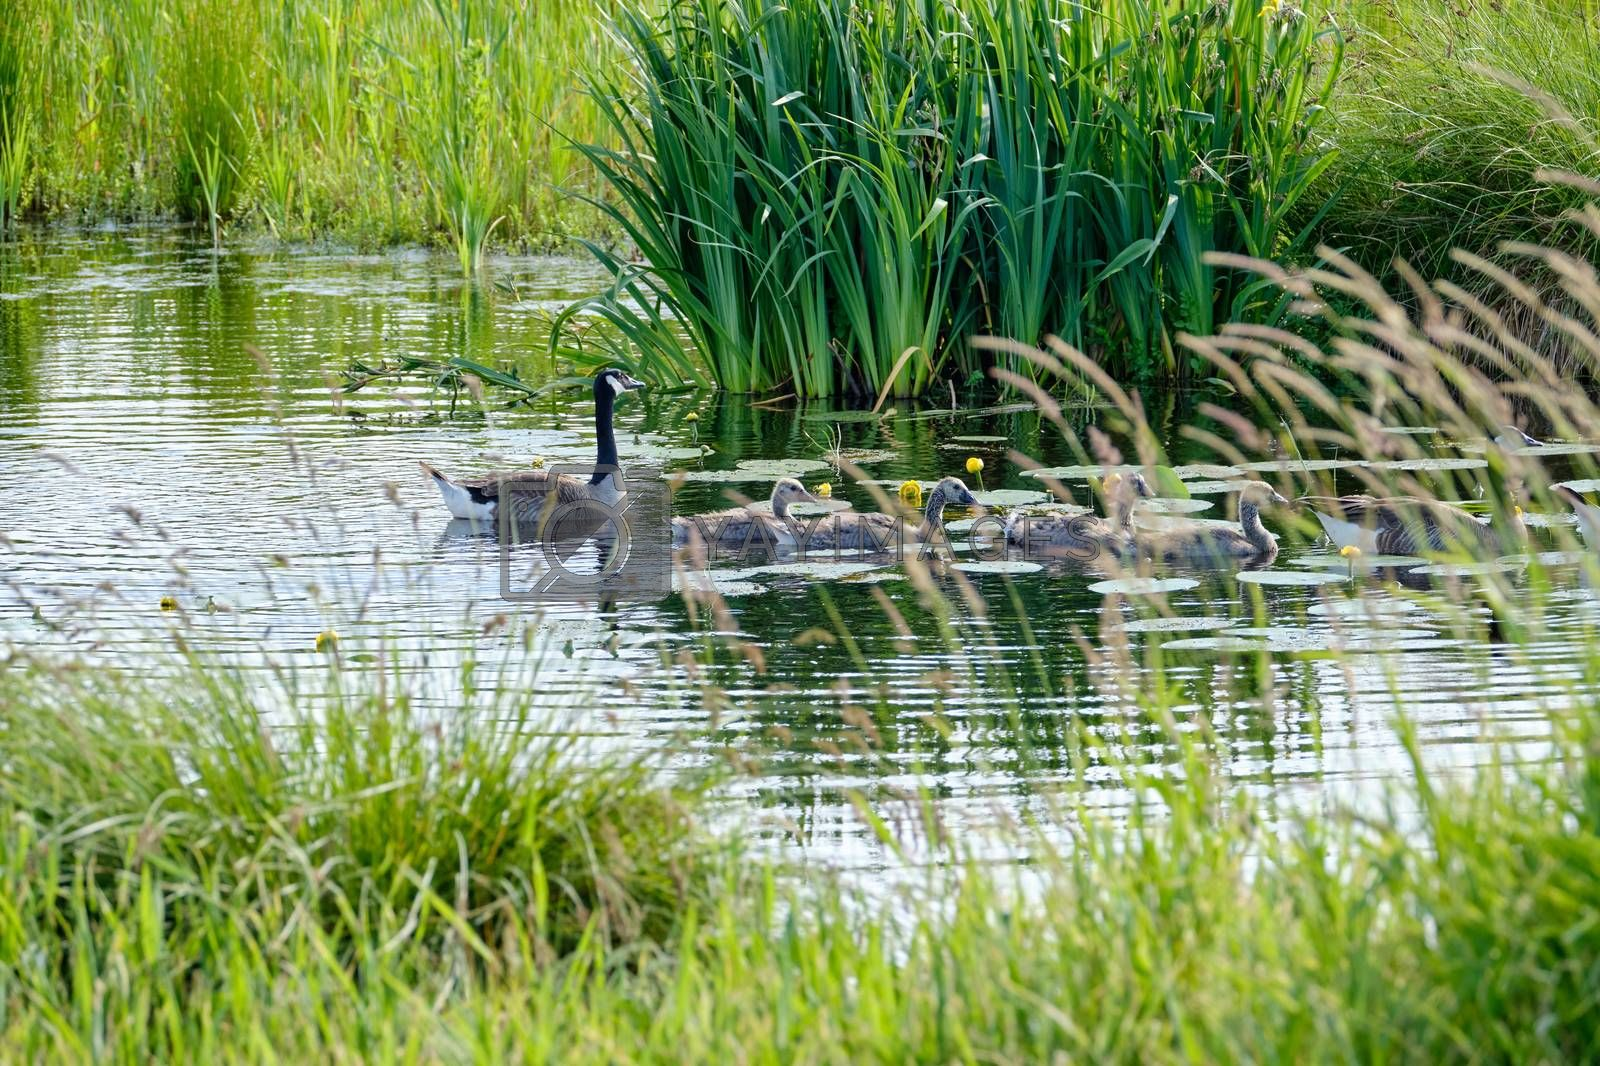 Canada goose with newly hatched chicks, swimming in the water, four soft chicks behind yellow grass.